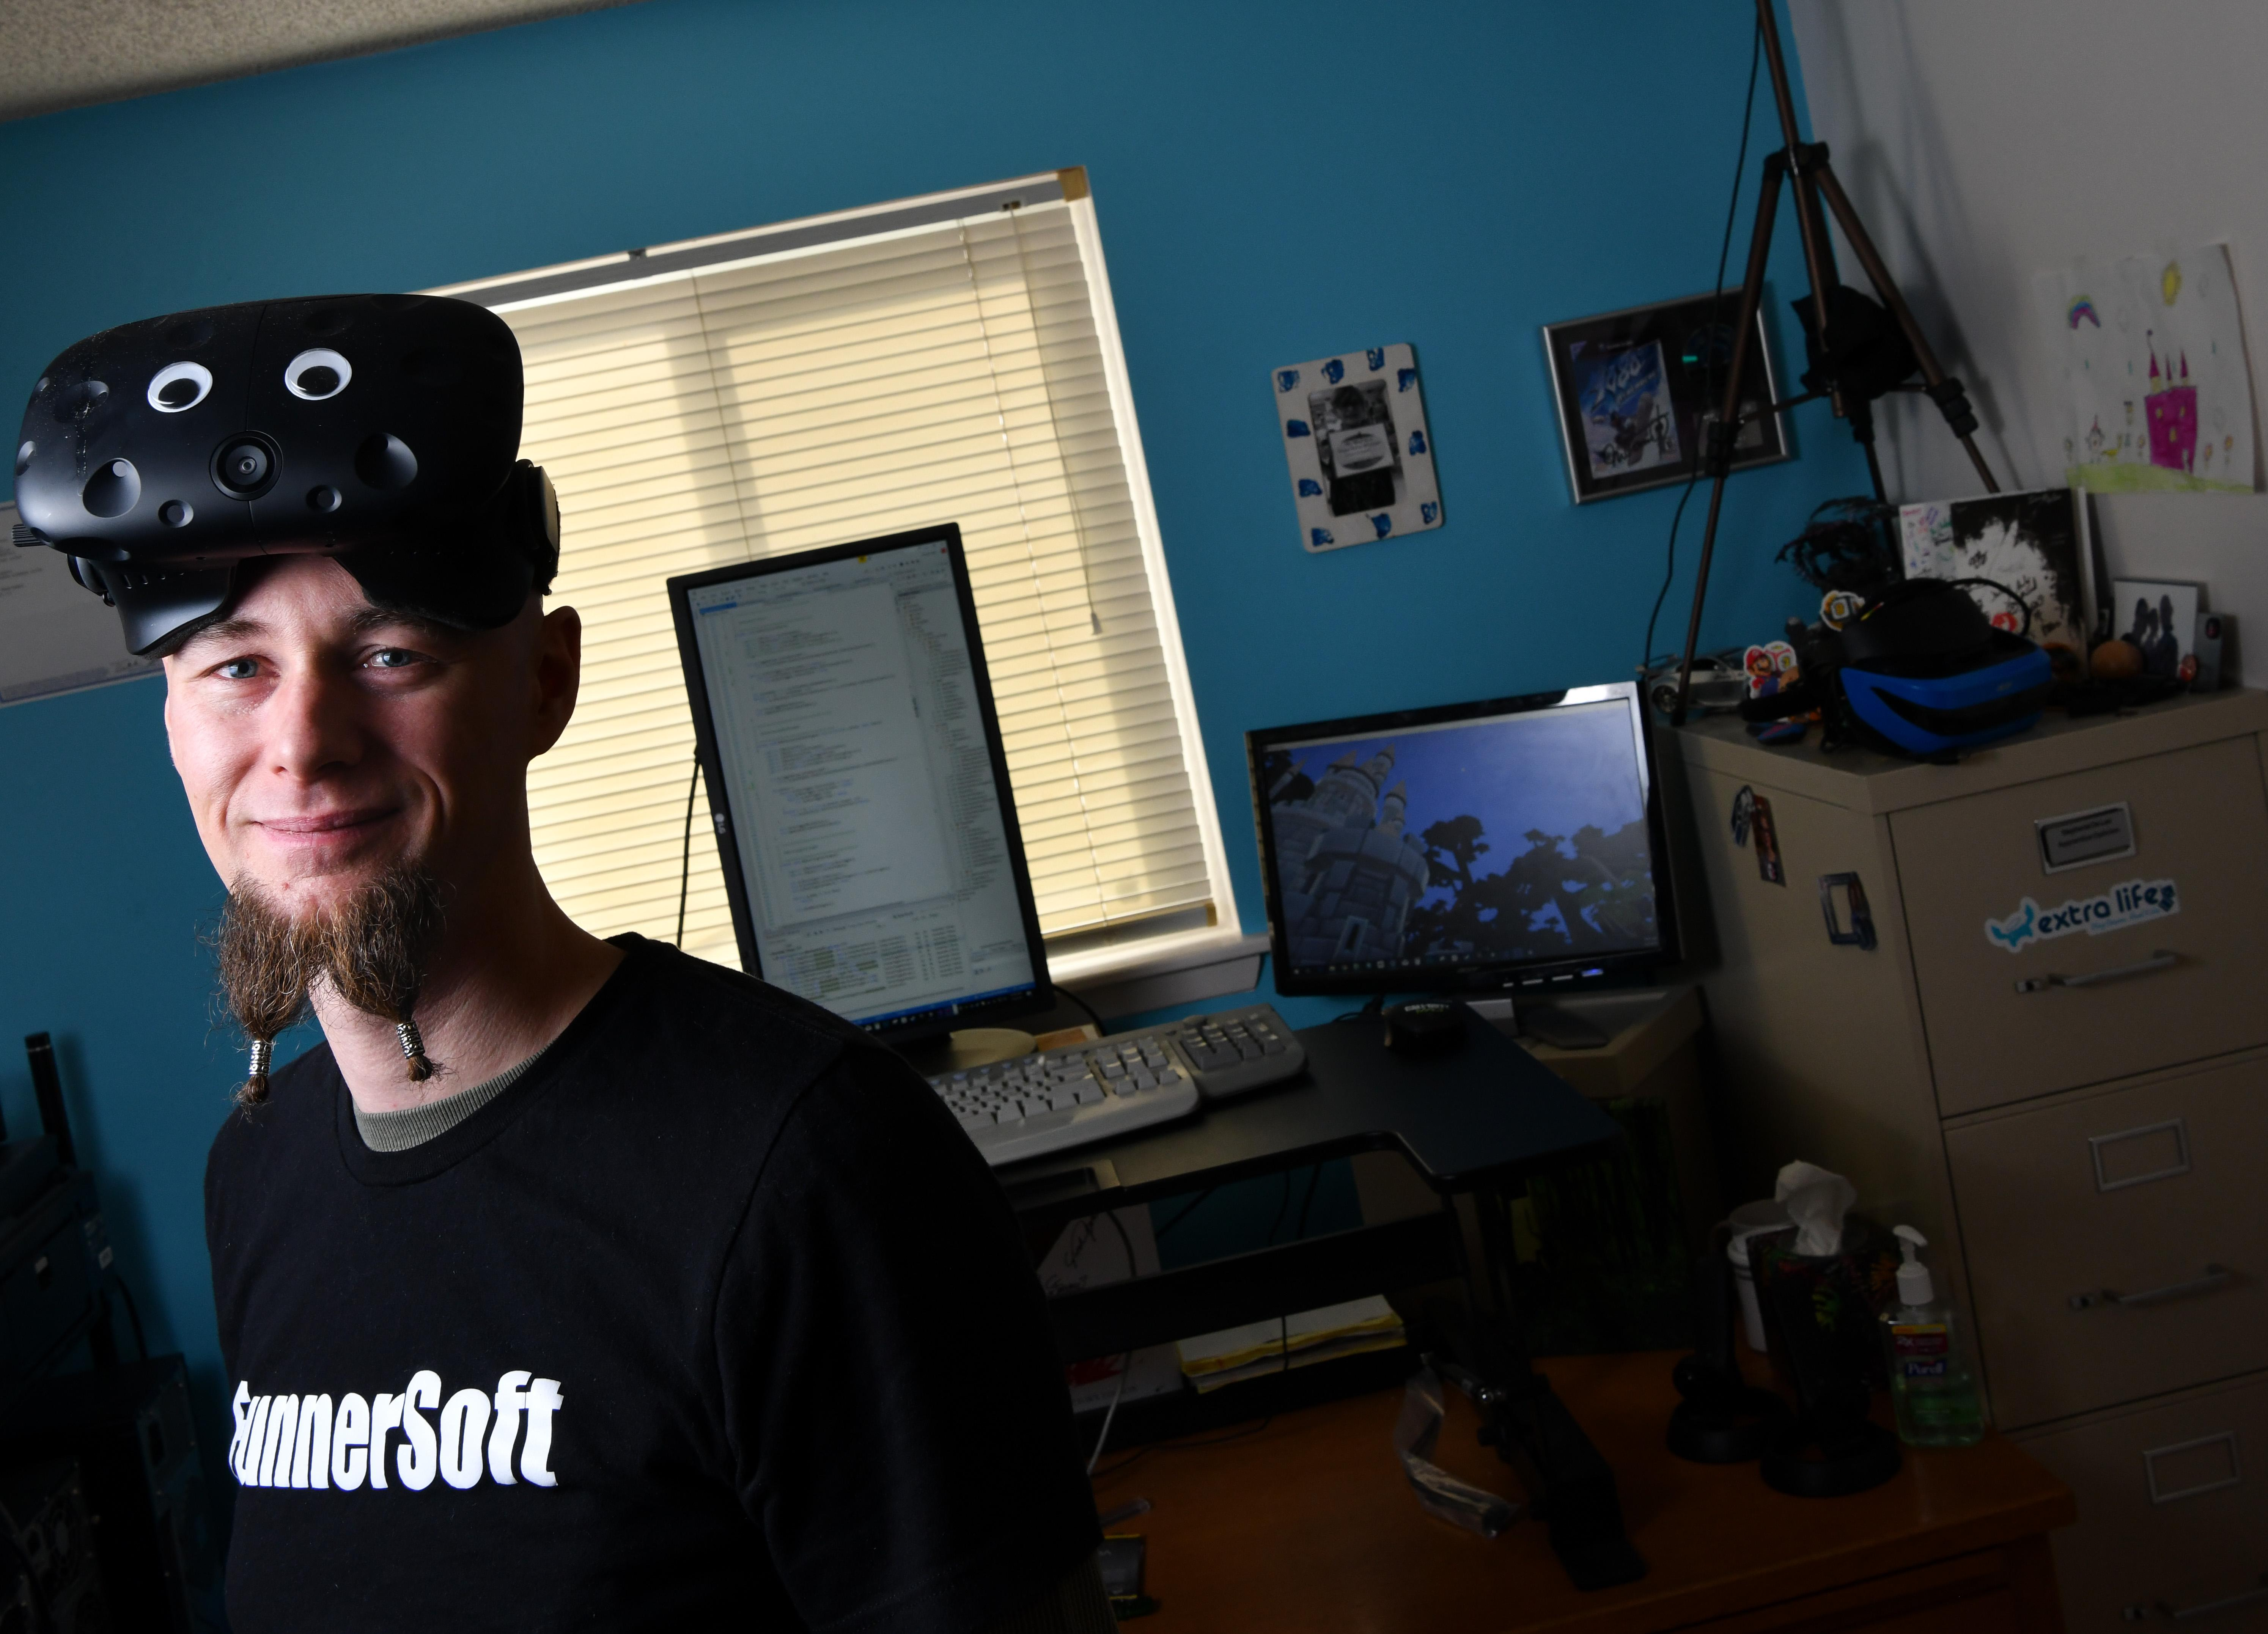 New Spokane Company Funnersoft About To Release Its First Game